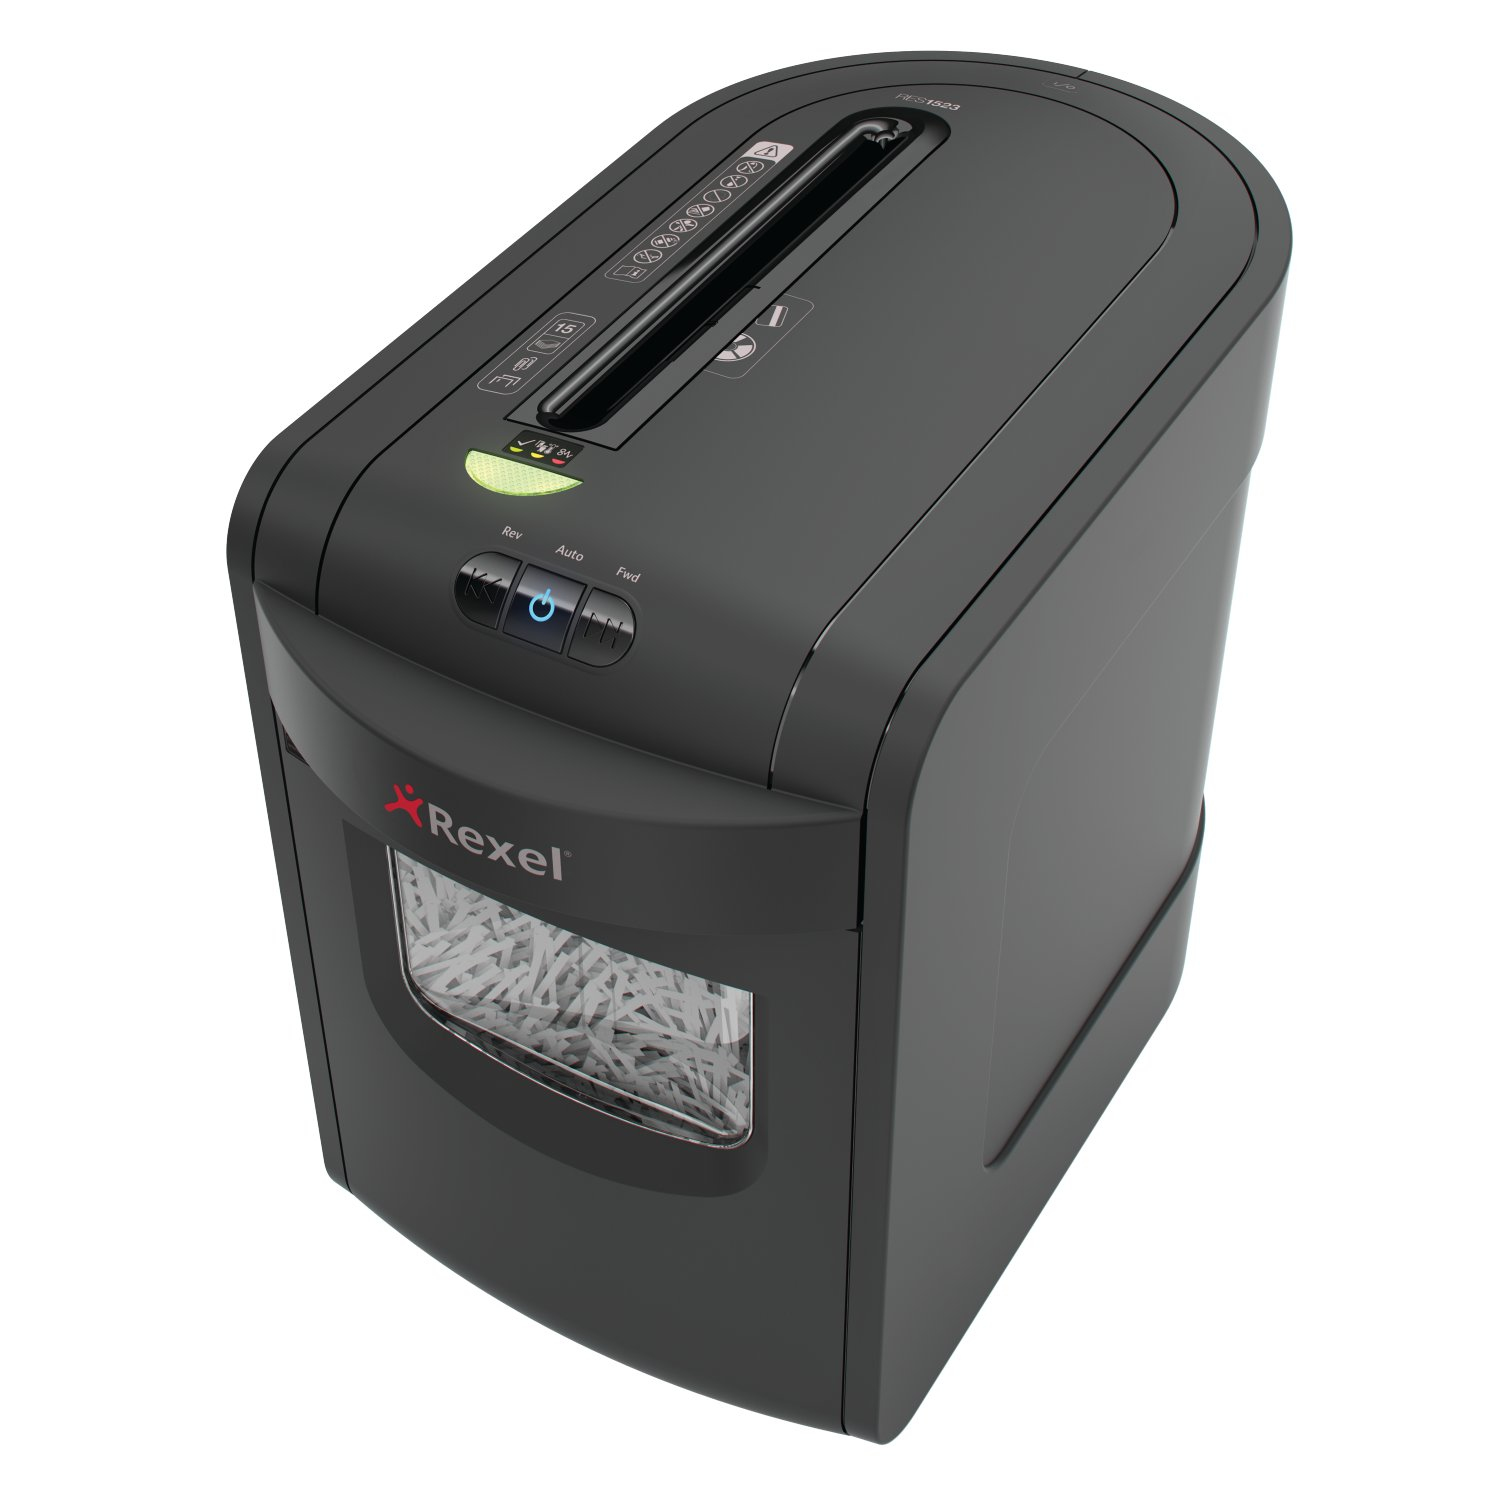 acco Rexel Mercury Res1523 Shredder Black Dd 2105015 - AD01